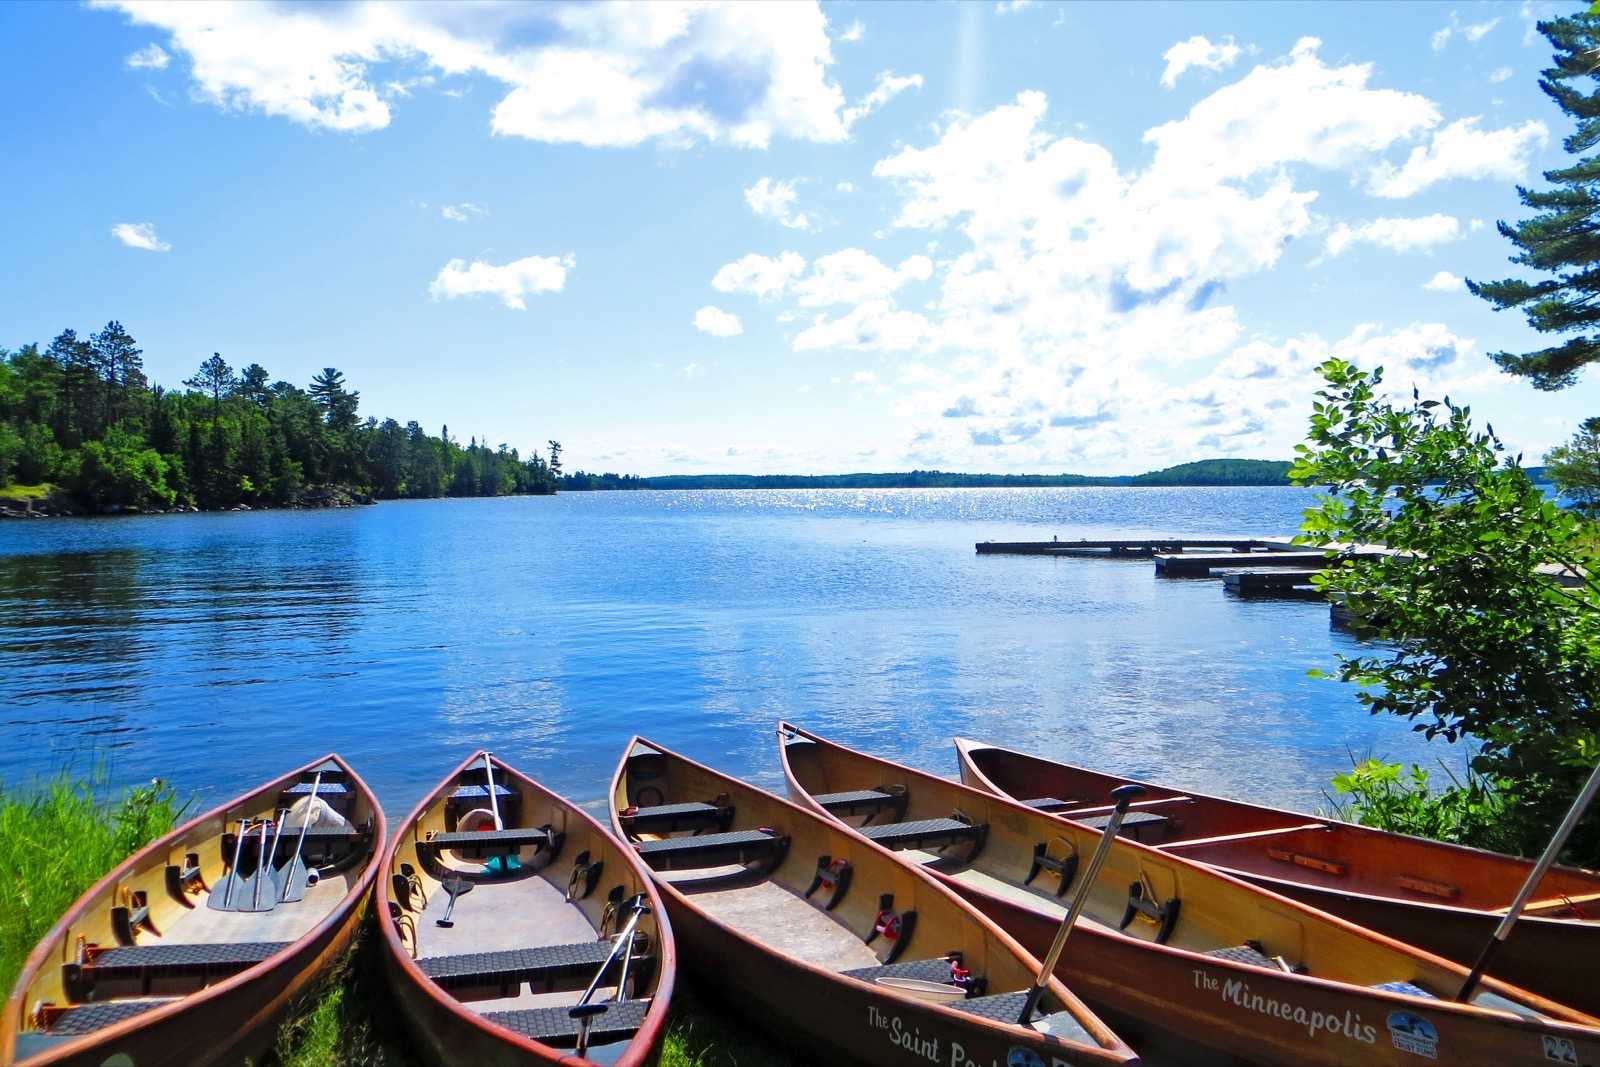 Five canoes lined up on the shore of a large lake on a sunny day at Voyageurs National Park.